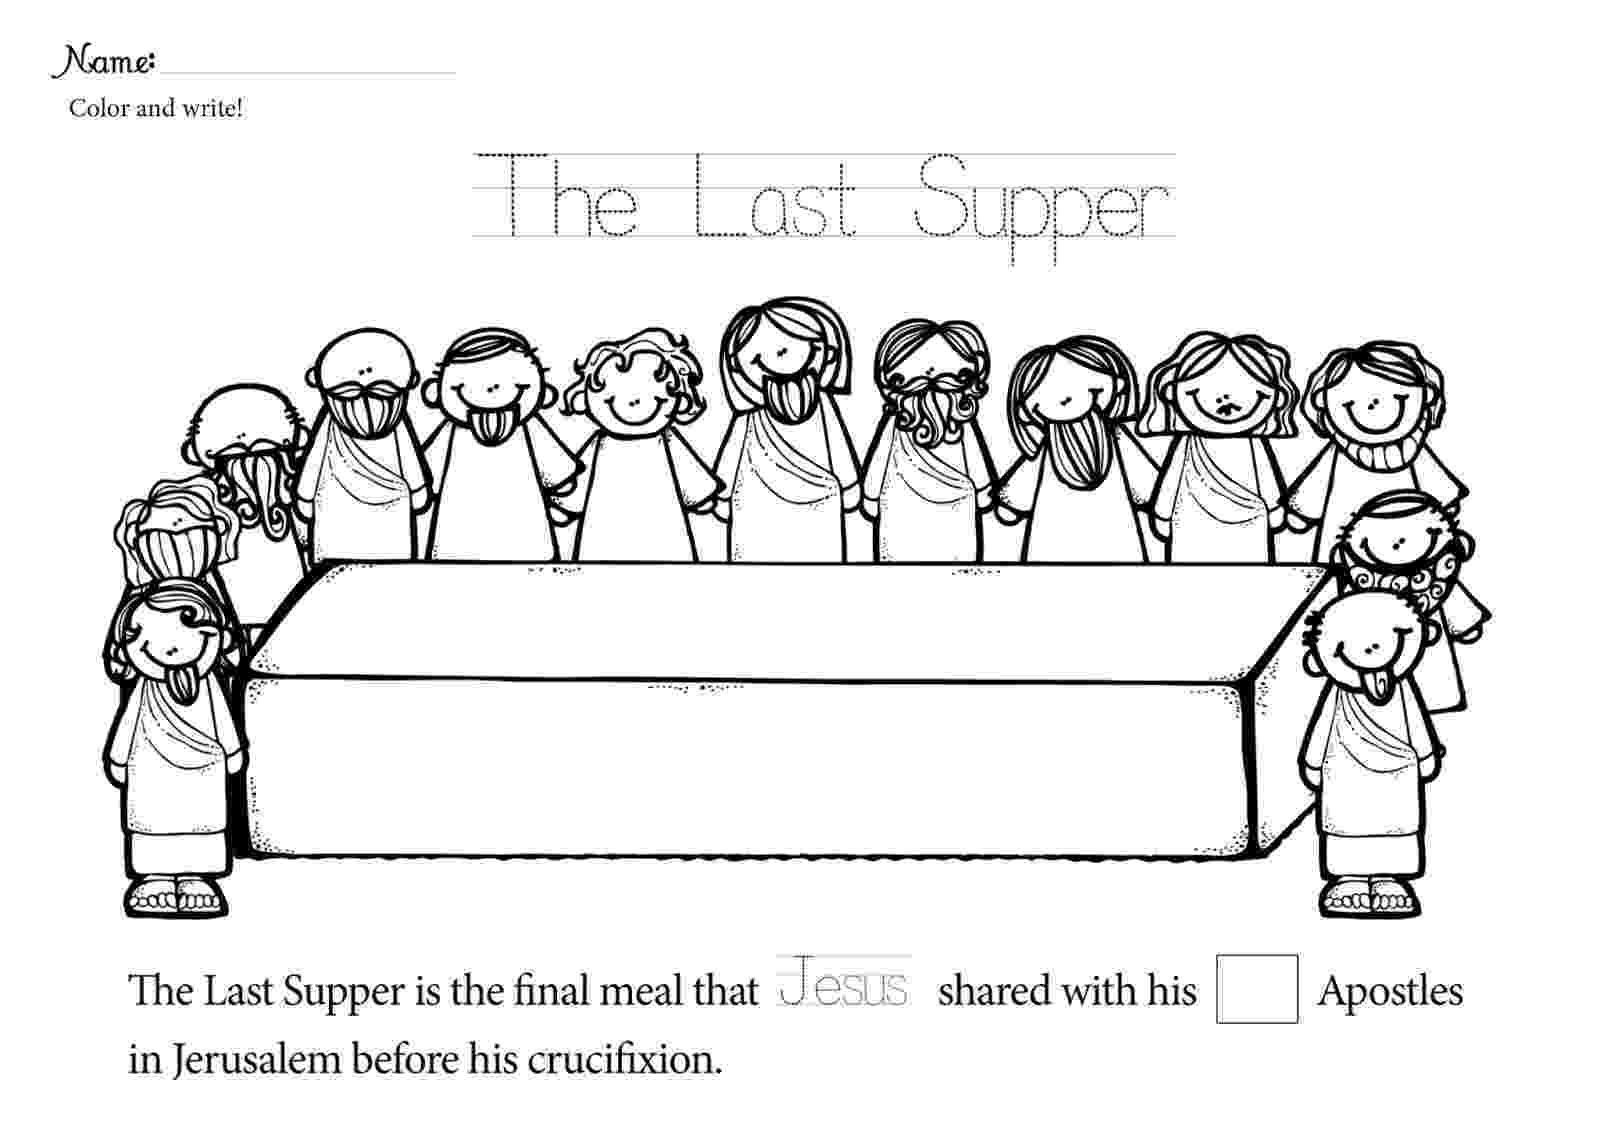 last supper coloring page the last supper bible coloring pages bible coloring supper coloring page last